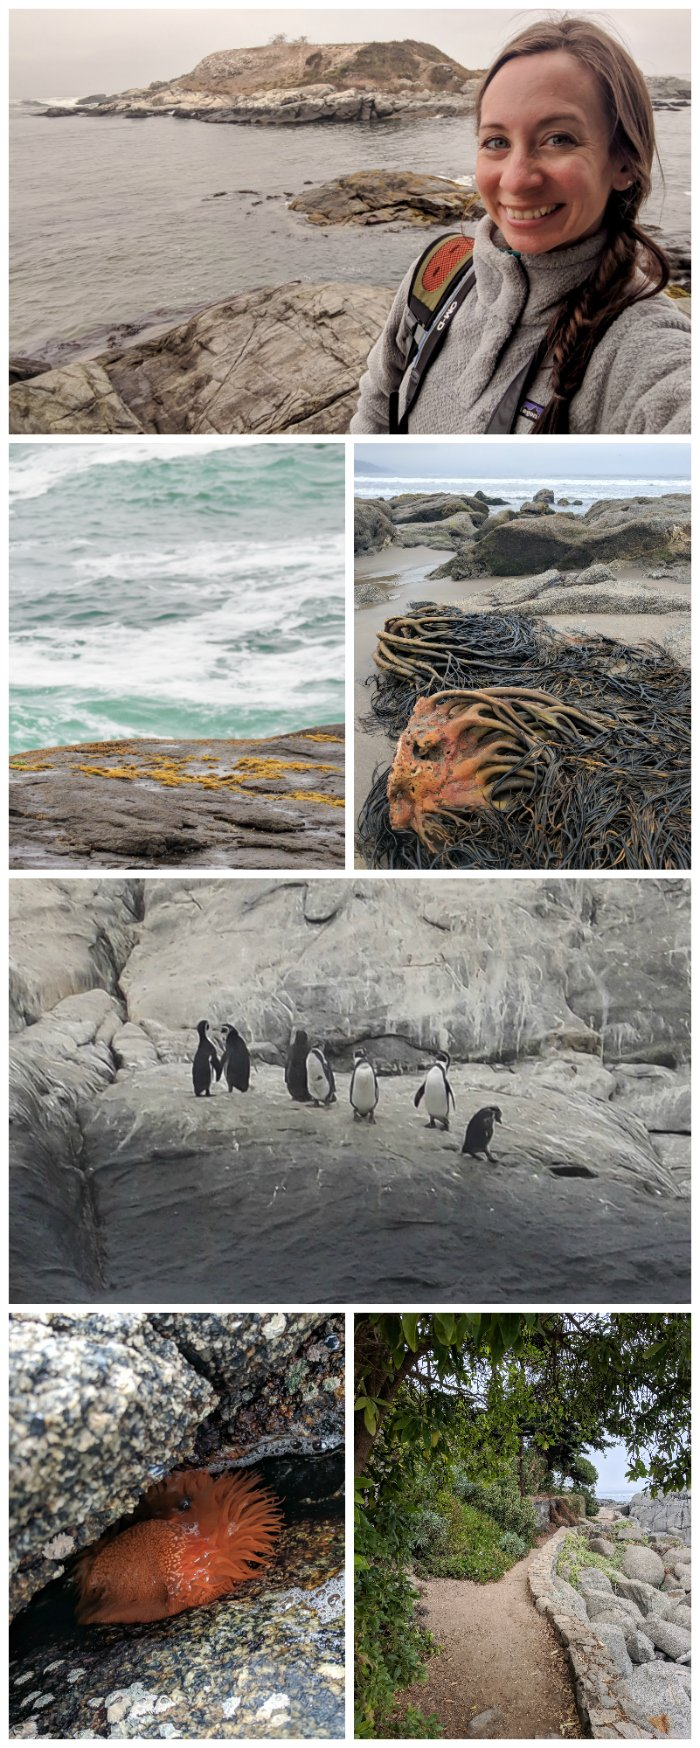 How to Spend One Week in Chile and Cover All the Bases | Spending the day with penguins on the Isla de Cachagua #chile #valparaiso #whattodoinchile #weekinchile #penguins #cachagua #beach